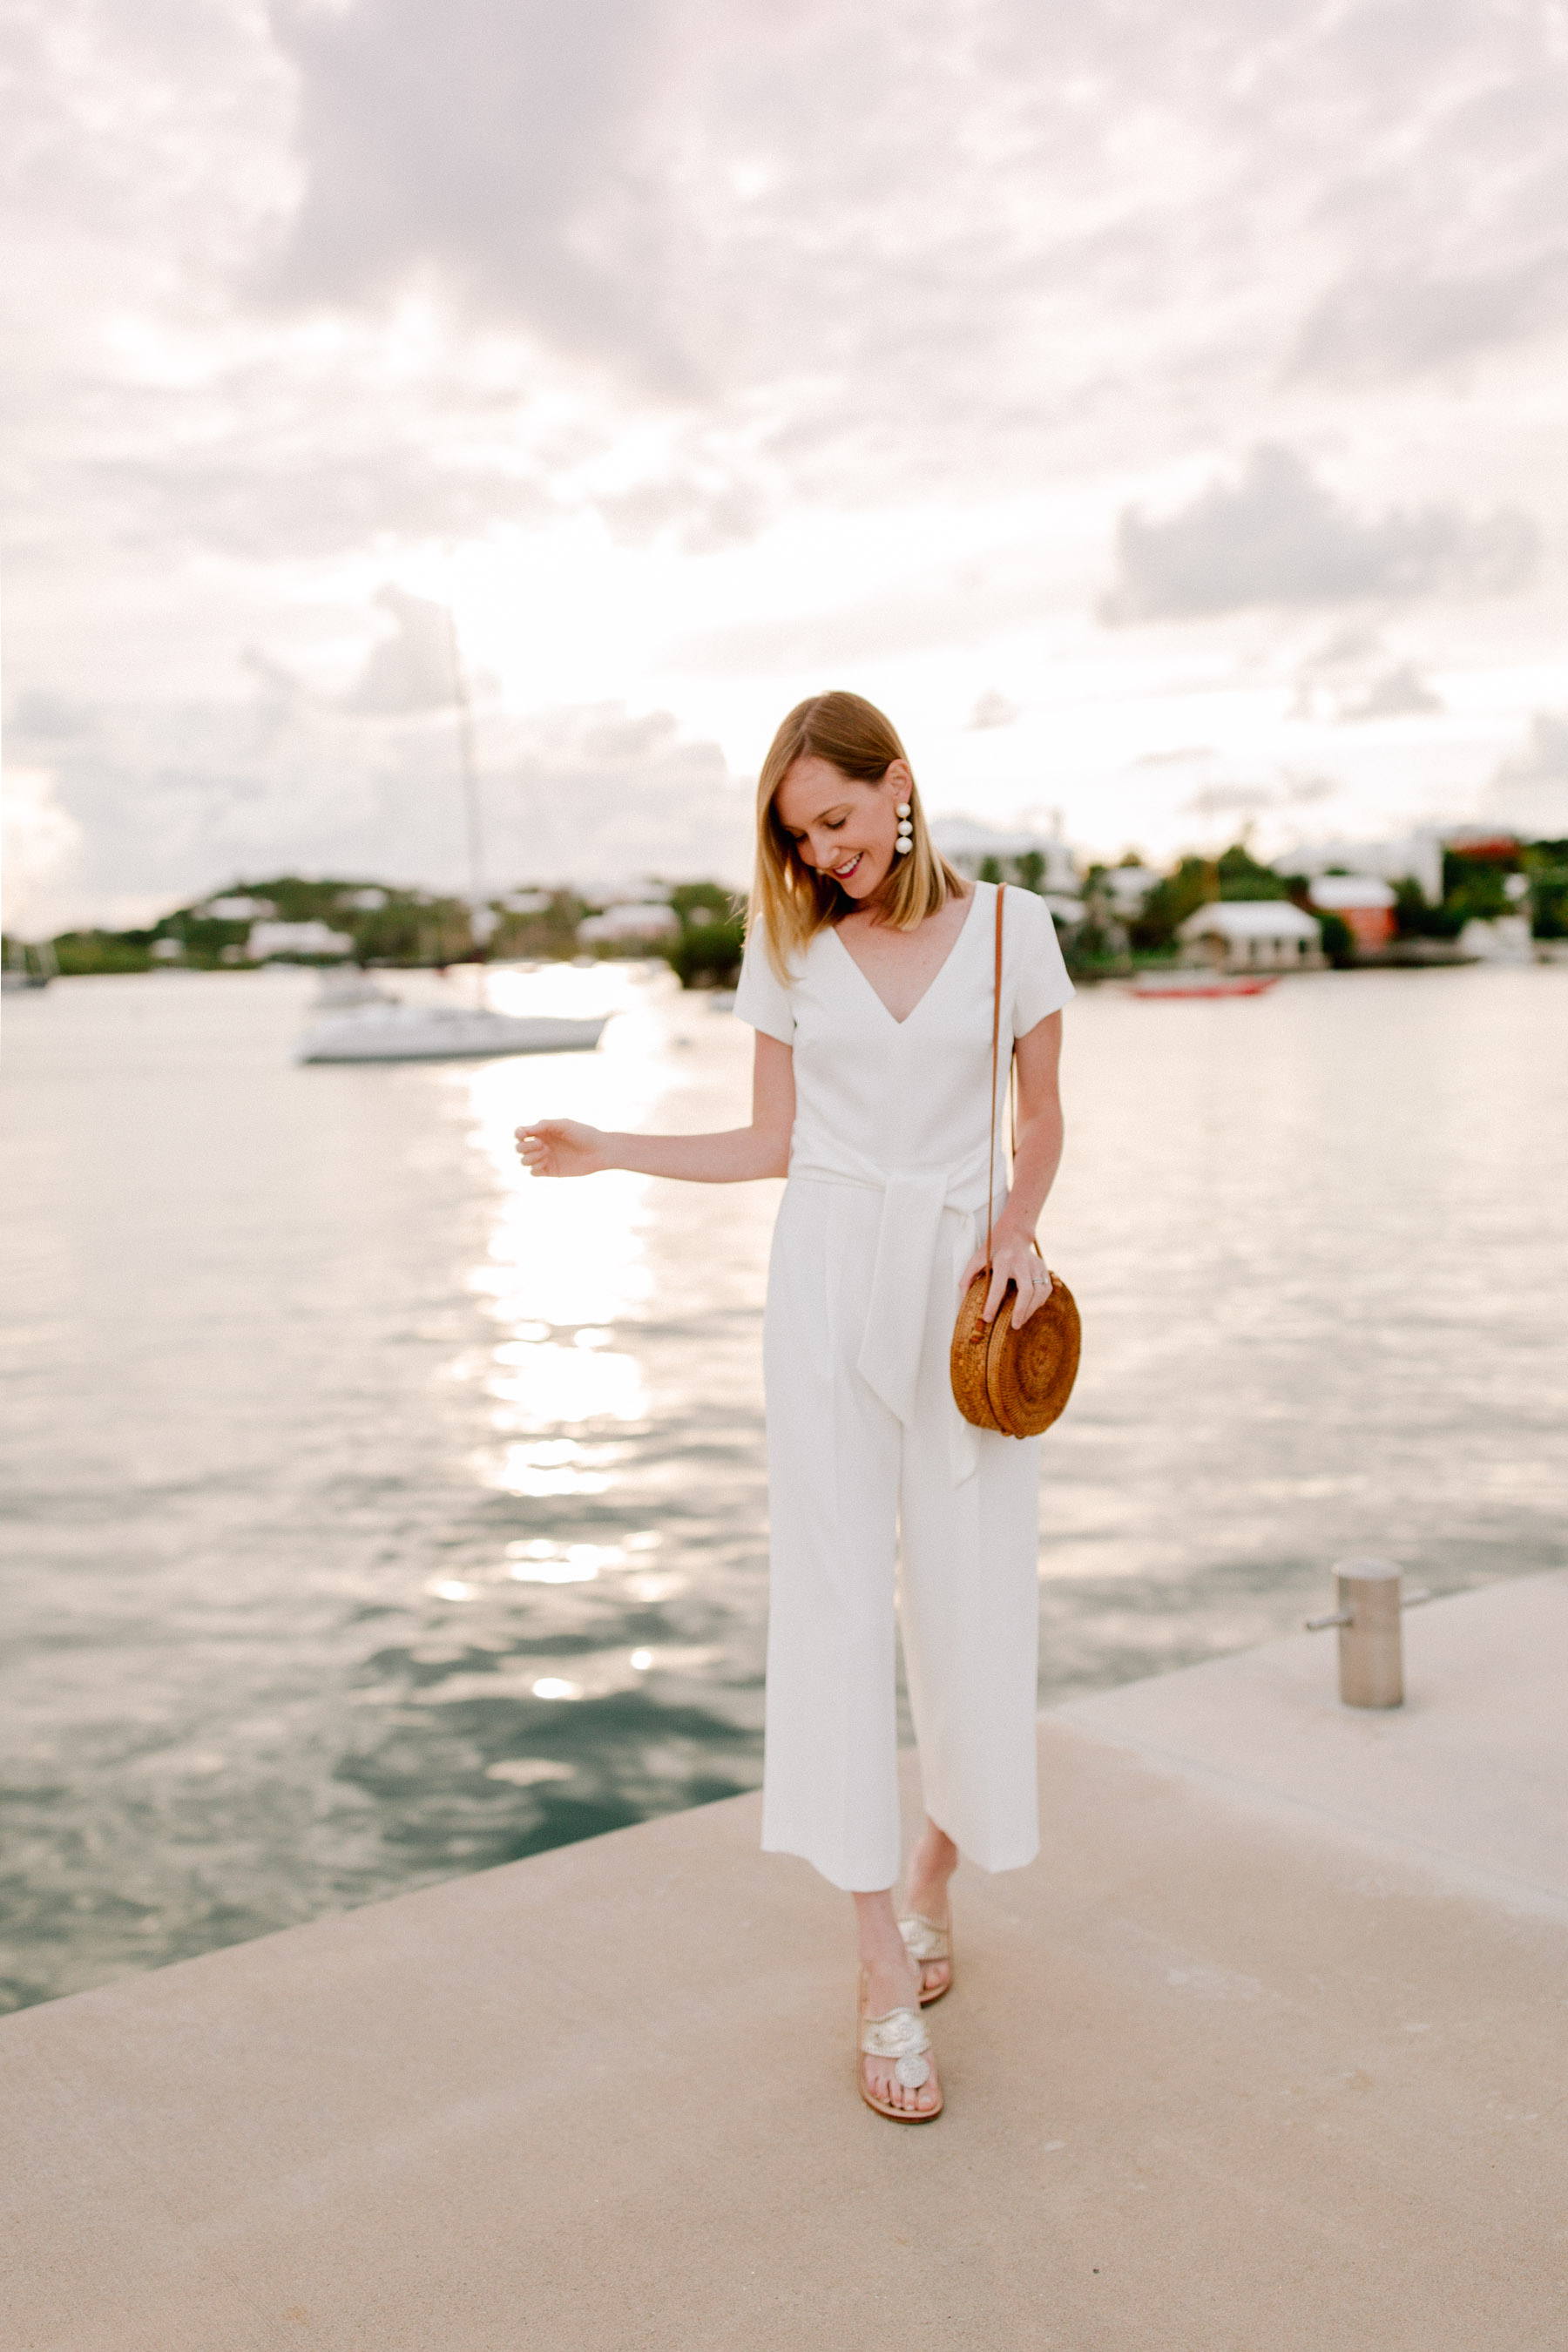 My Favorite Vacation Outfit and More Sunset Photos